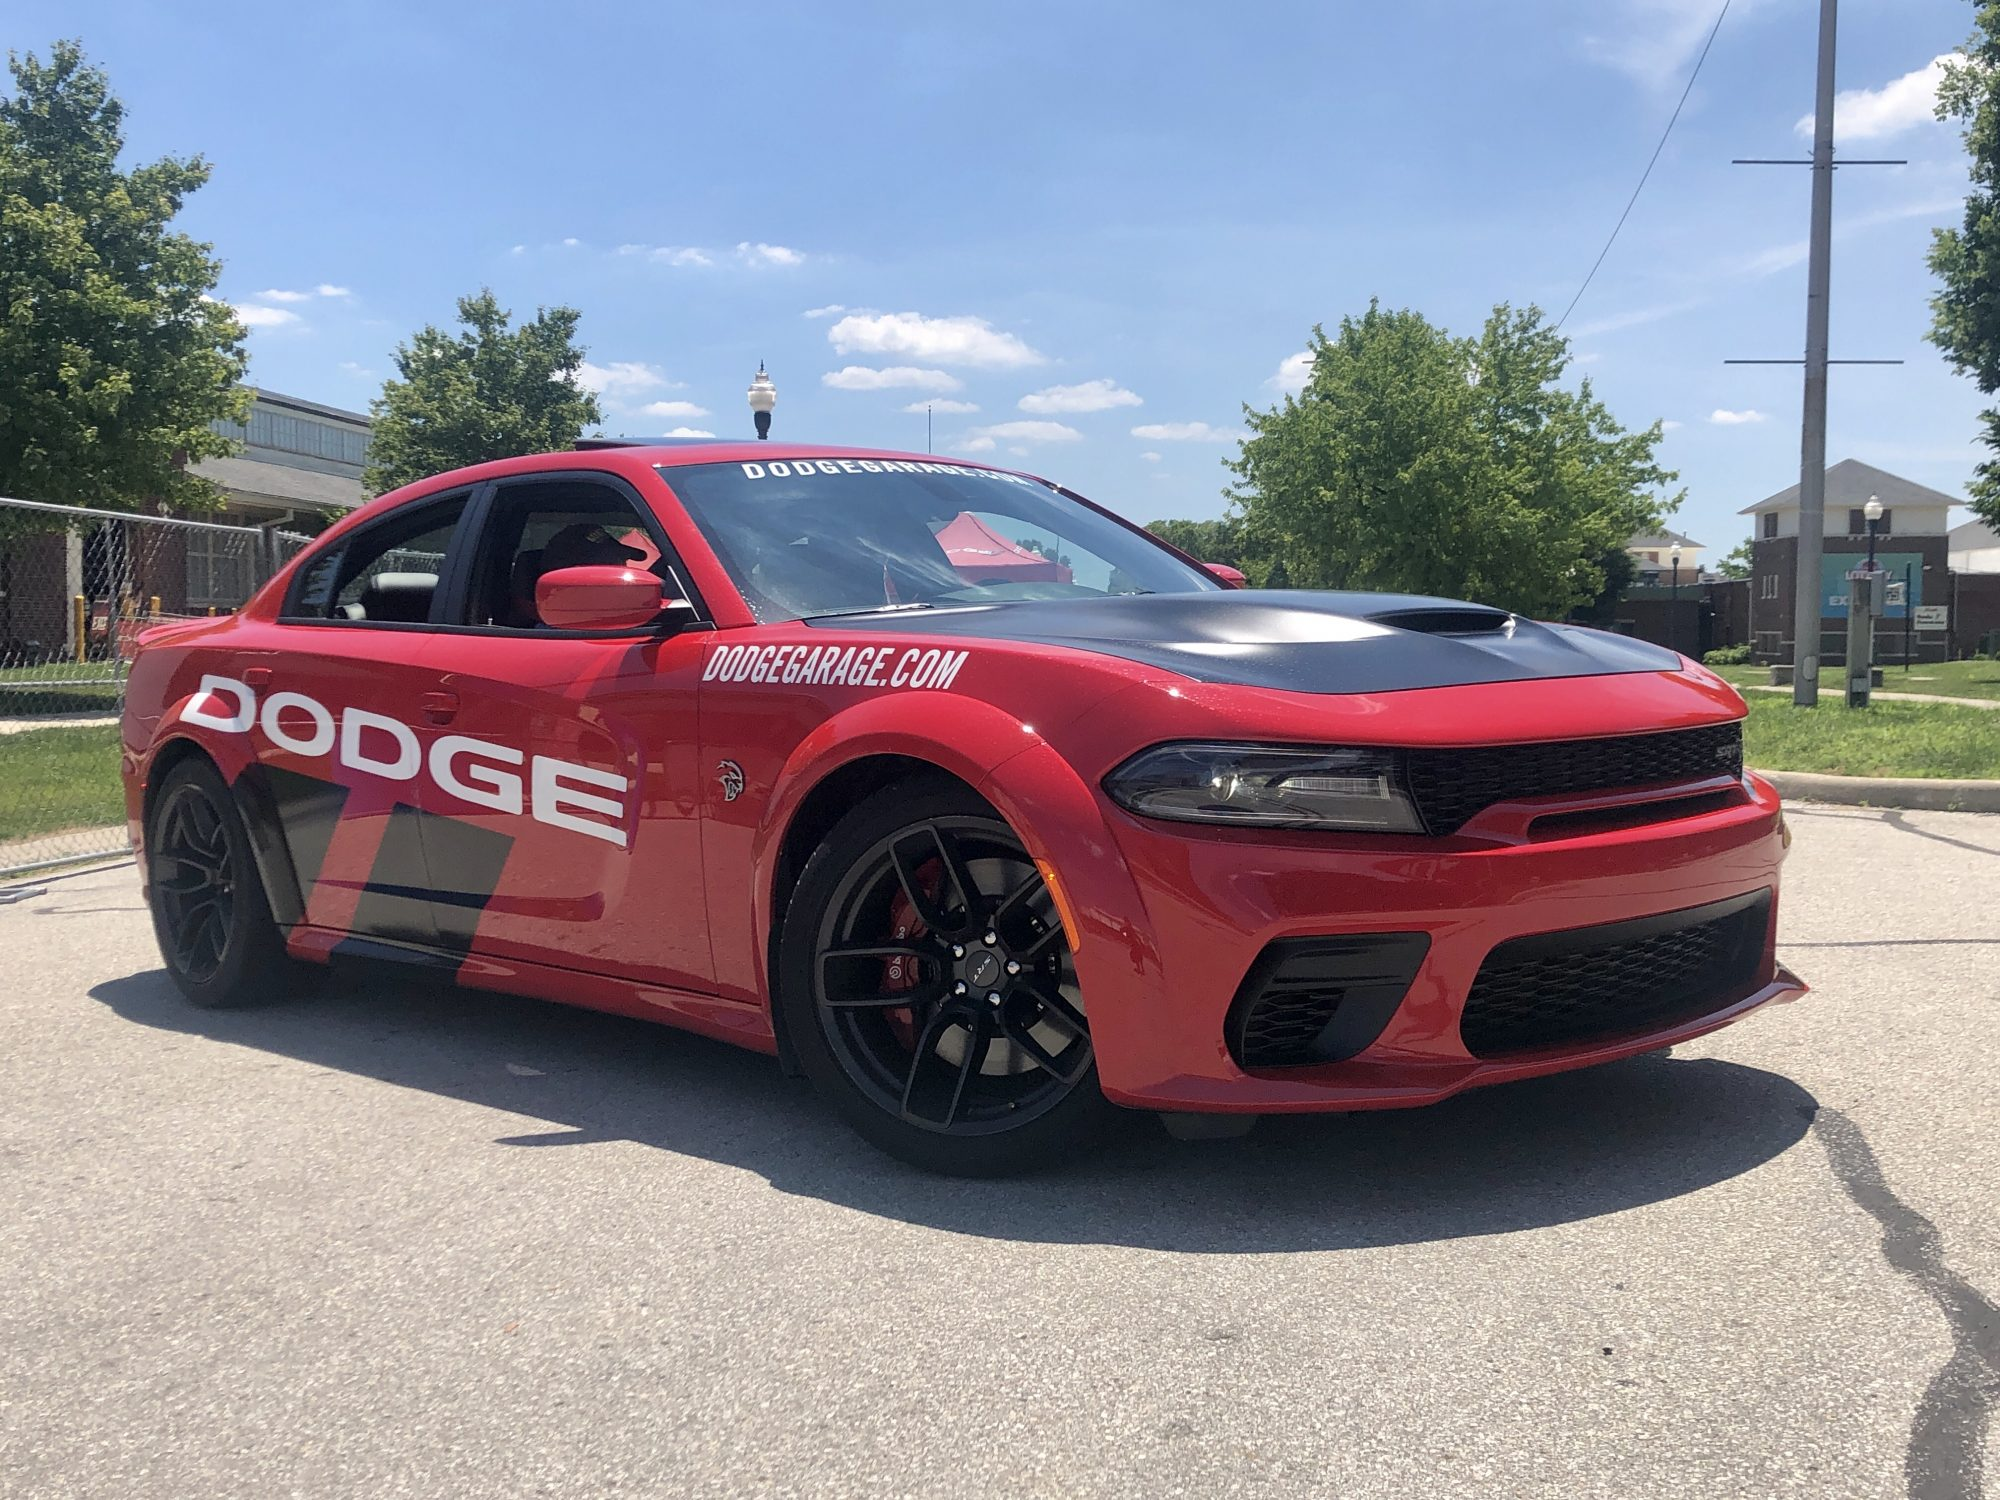 dodge thrill ride